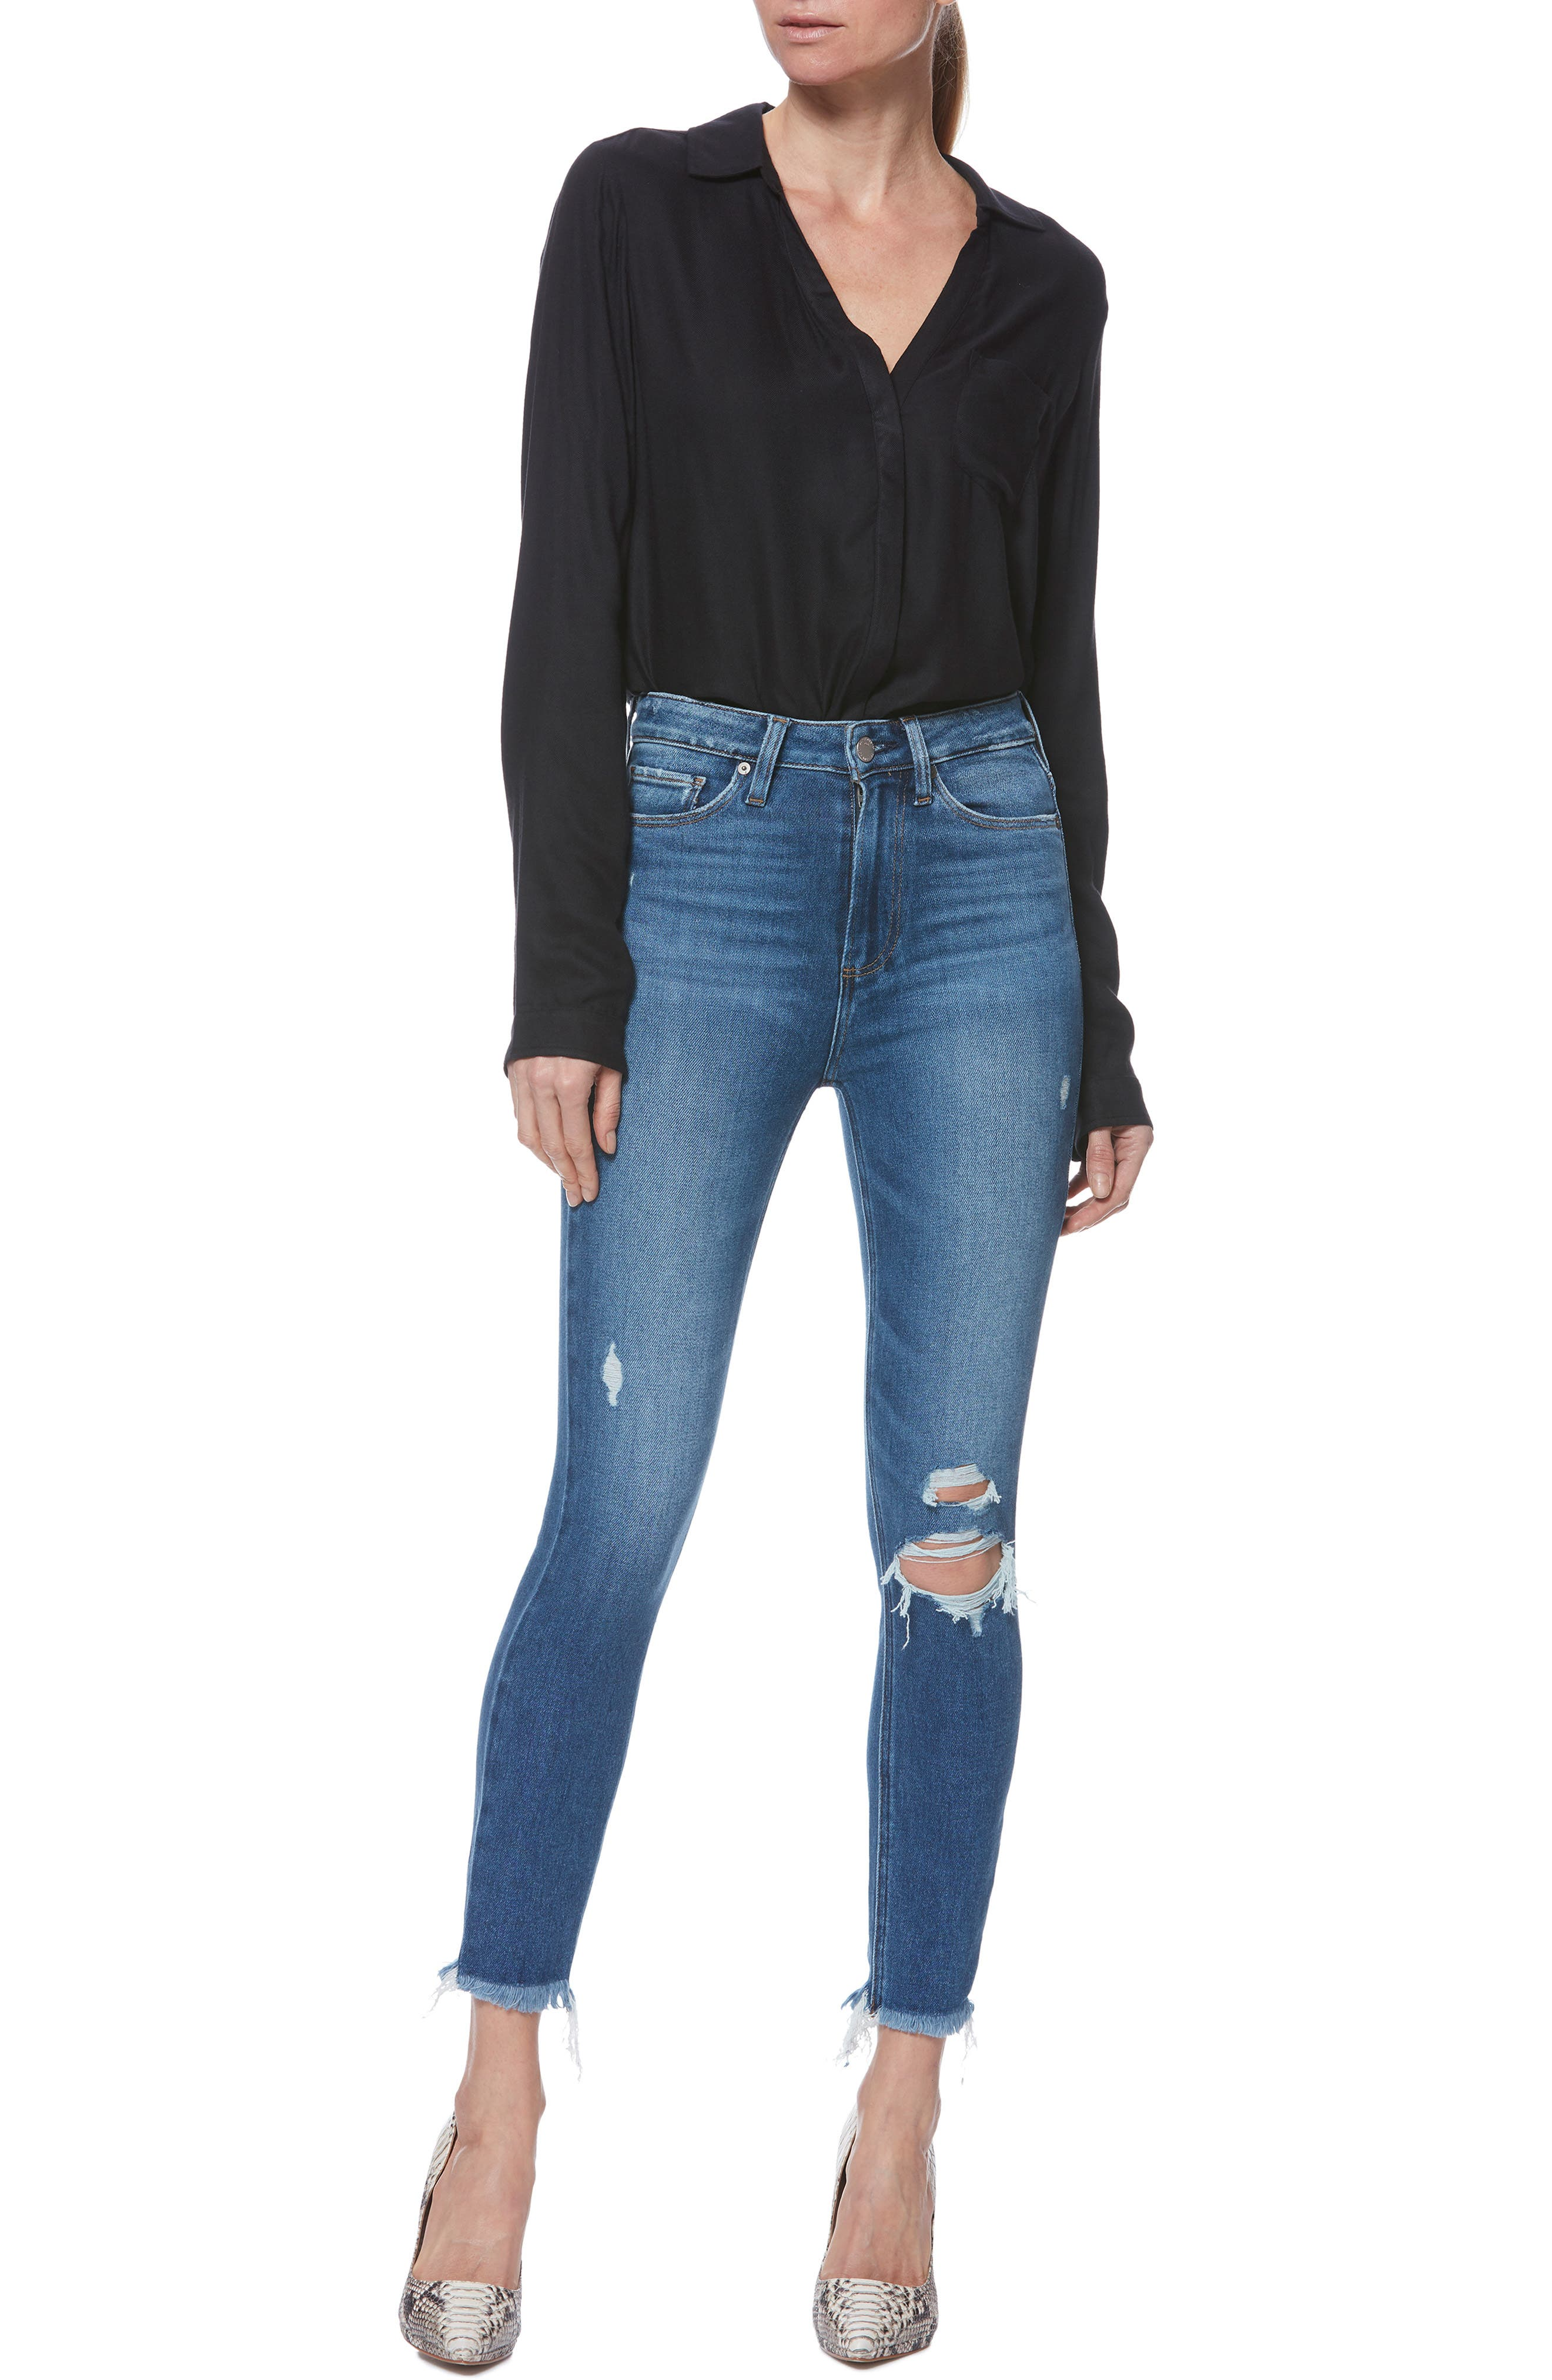 PAIGE,                             Margot High Waist Crop Skinny Jeans,                             Alternate thumbnail 7, color,                             ALESSIO DESTRUCTED